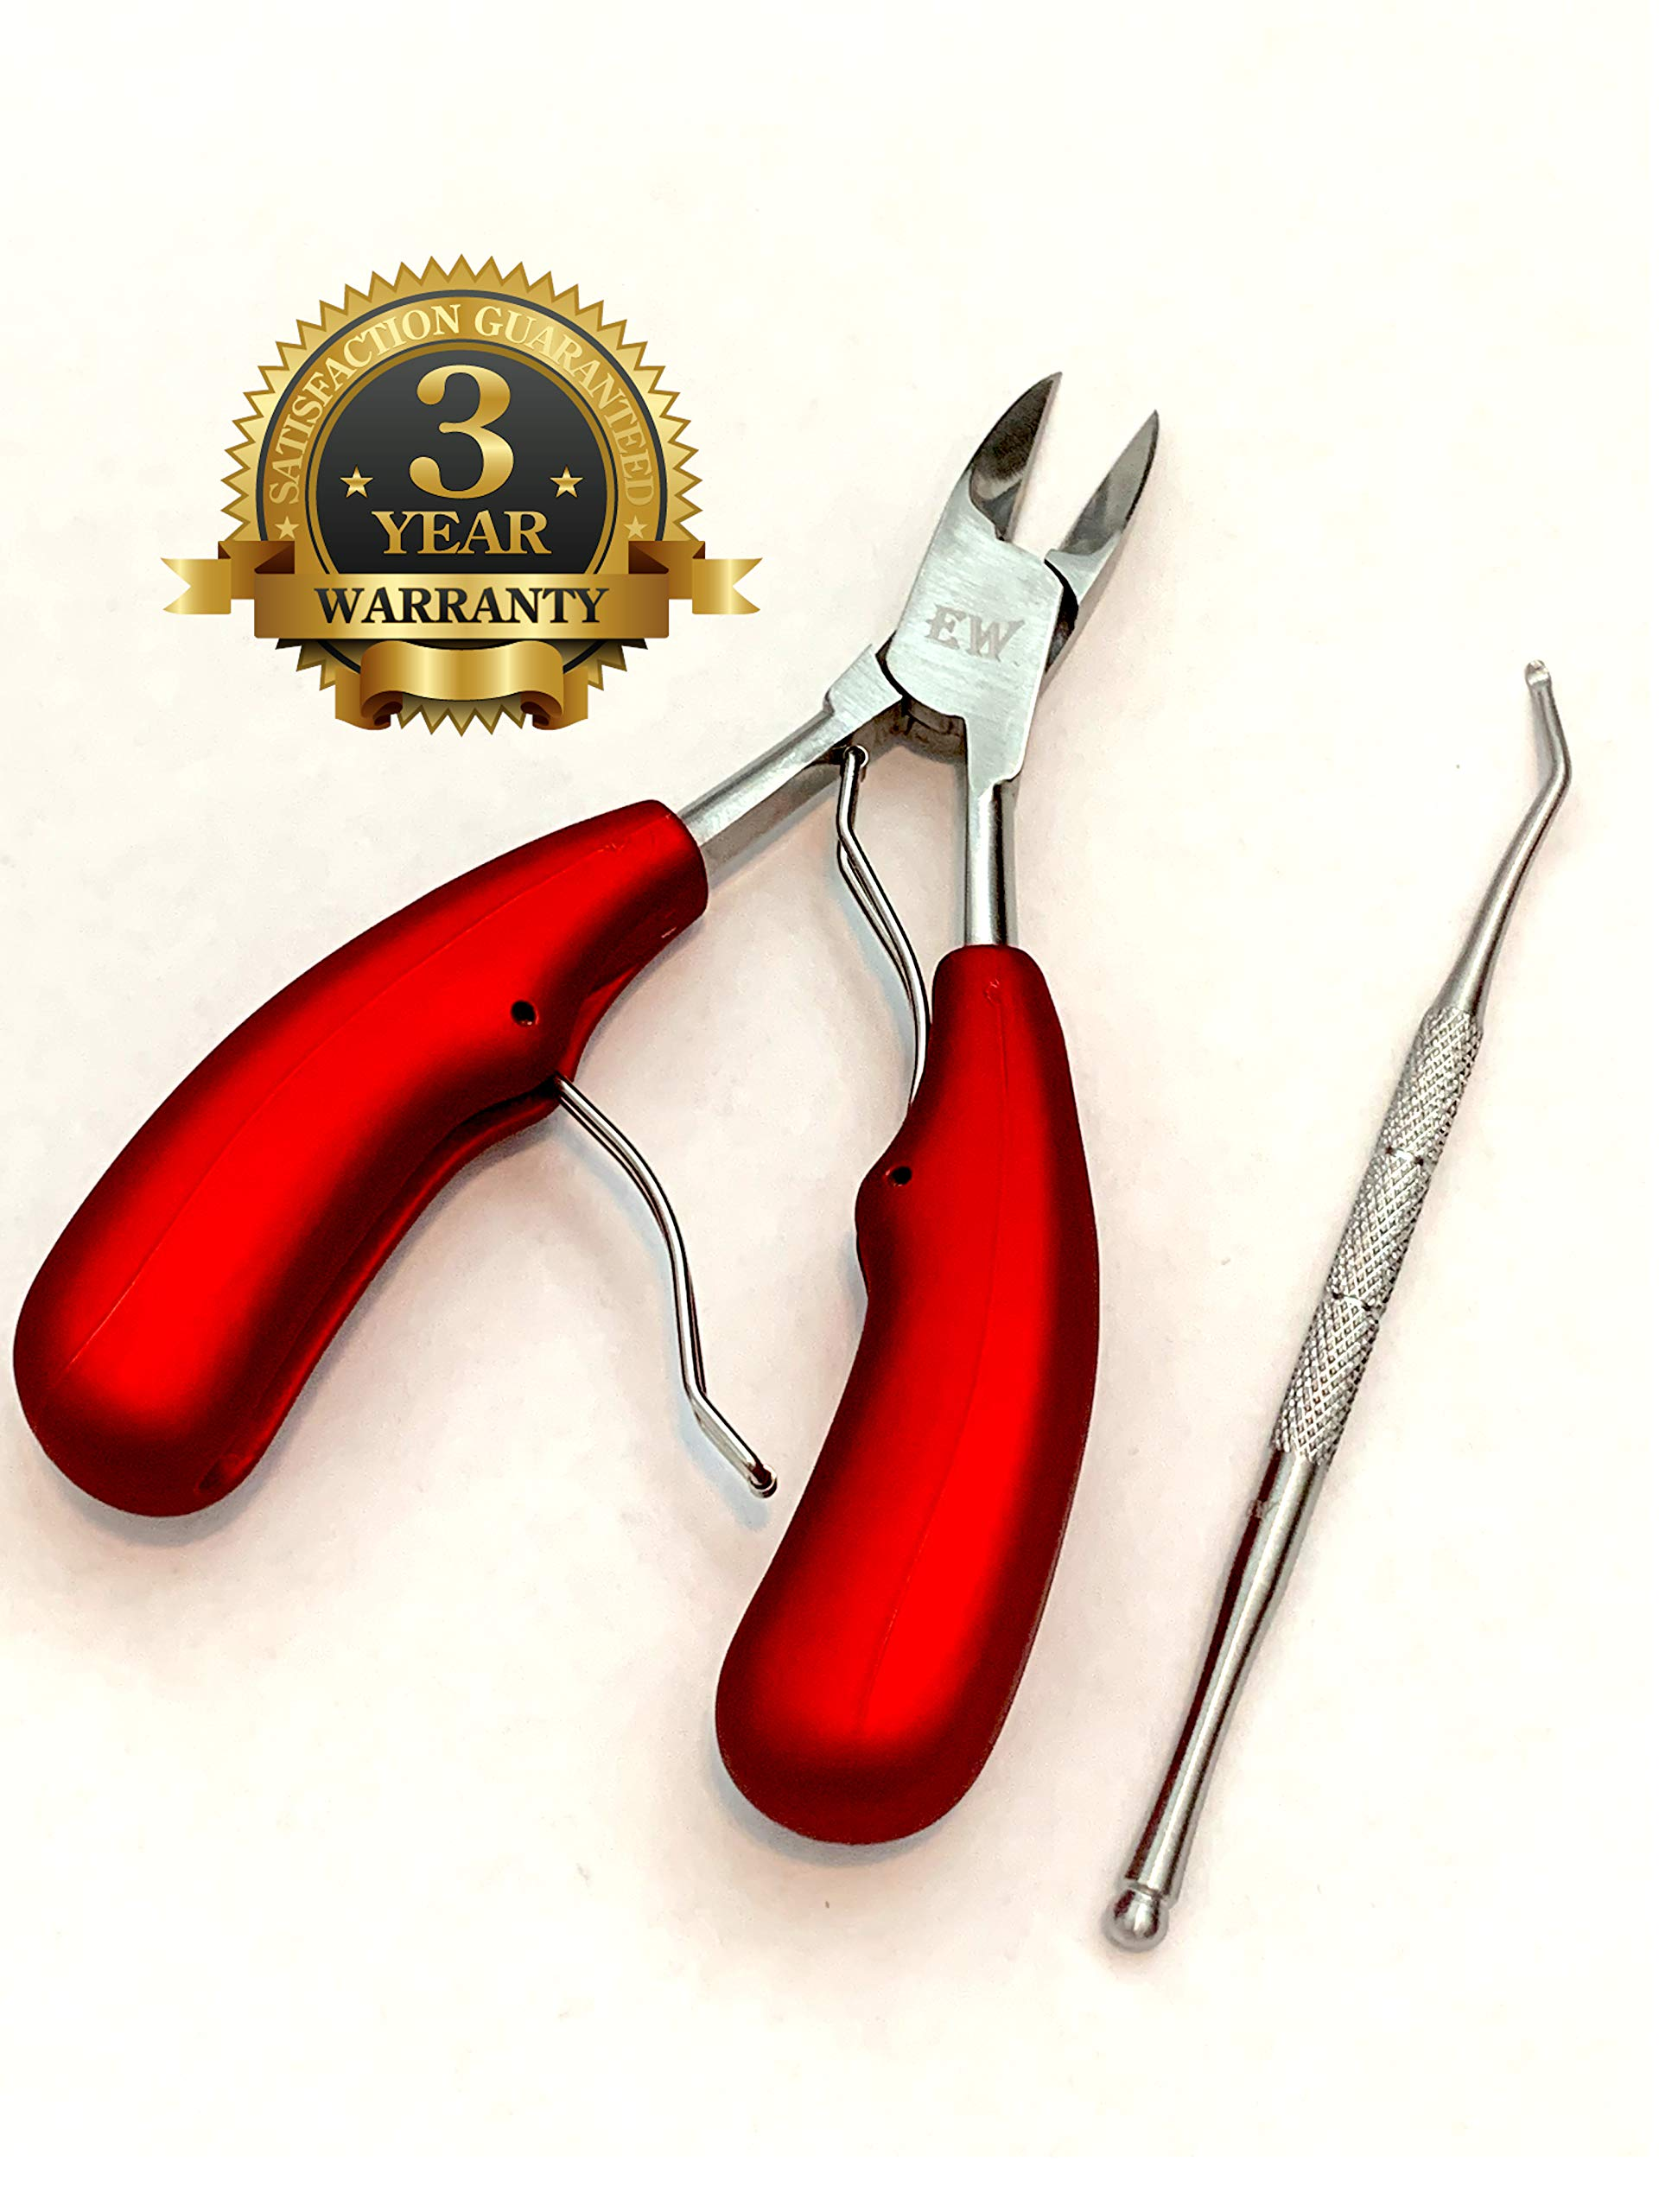 Toenail Clippers for Thick and Ingrown Toenails, Stainless Steel, Part of Fungus Treatment from EW Body Care, Other Uses: Cuticle Clippers, Dog Nail Clippers Features Dual Springs Easy Grip Handle by Exchange Ways Body Care